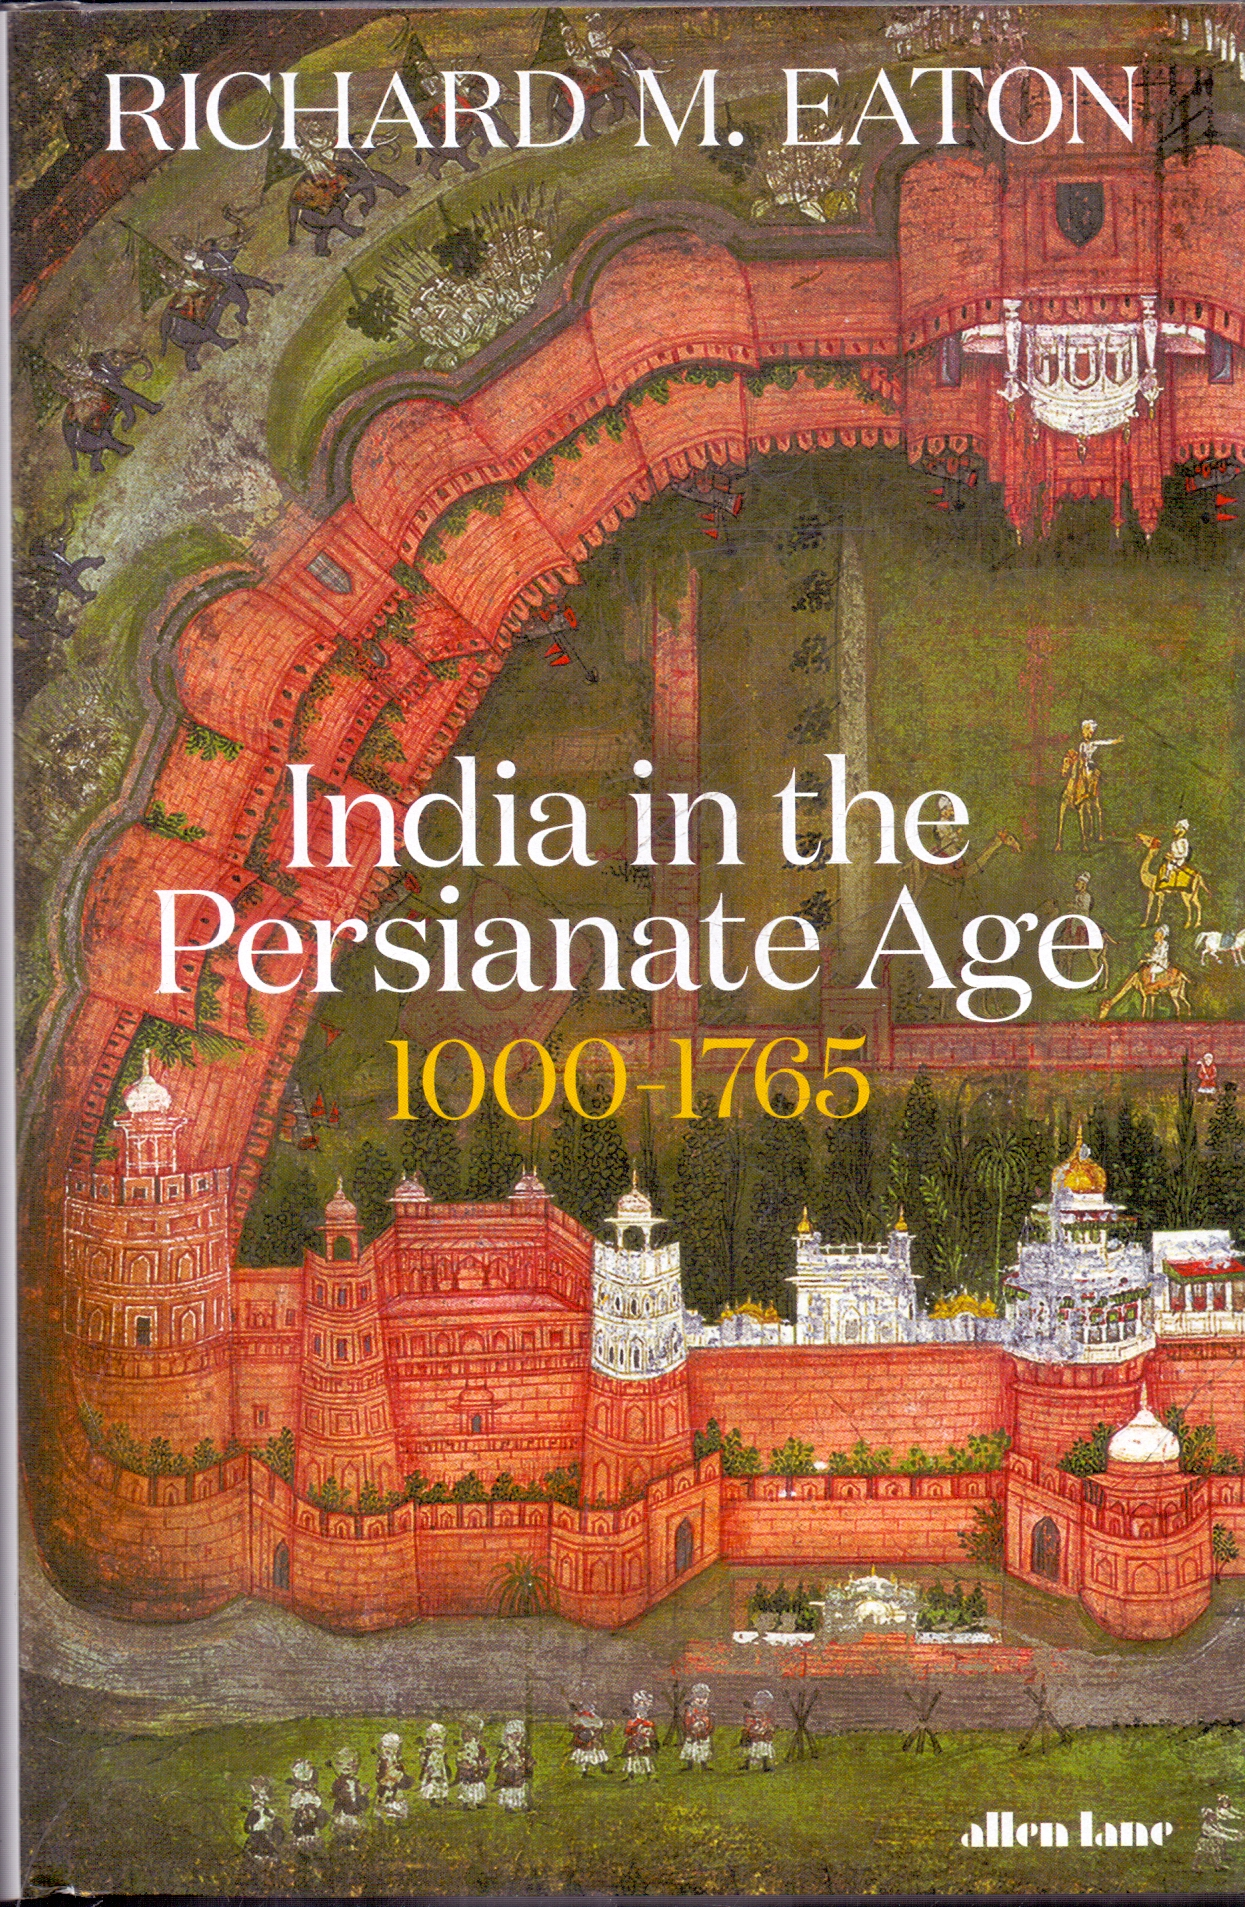 India in the Persianate Age 1000 - 1765